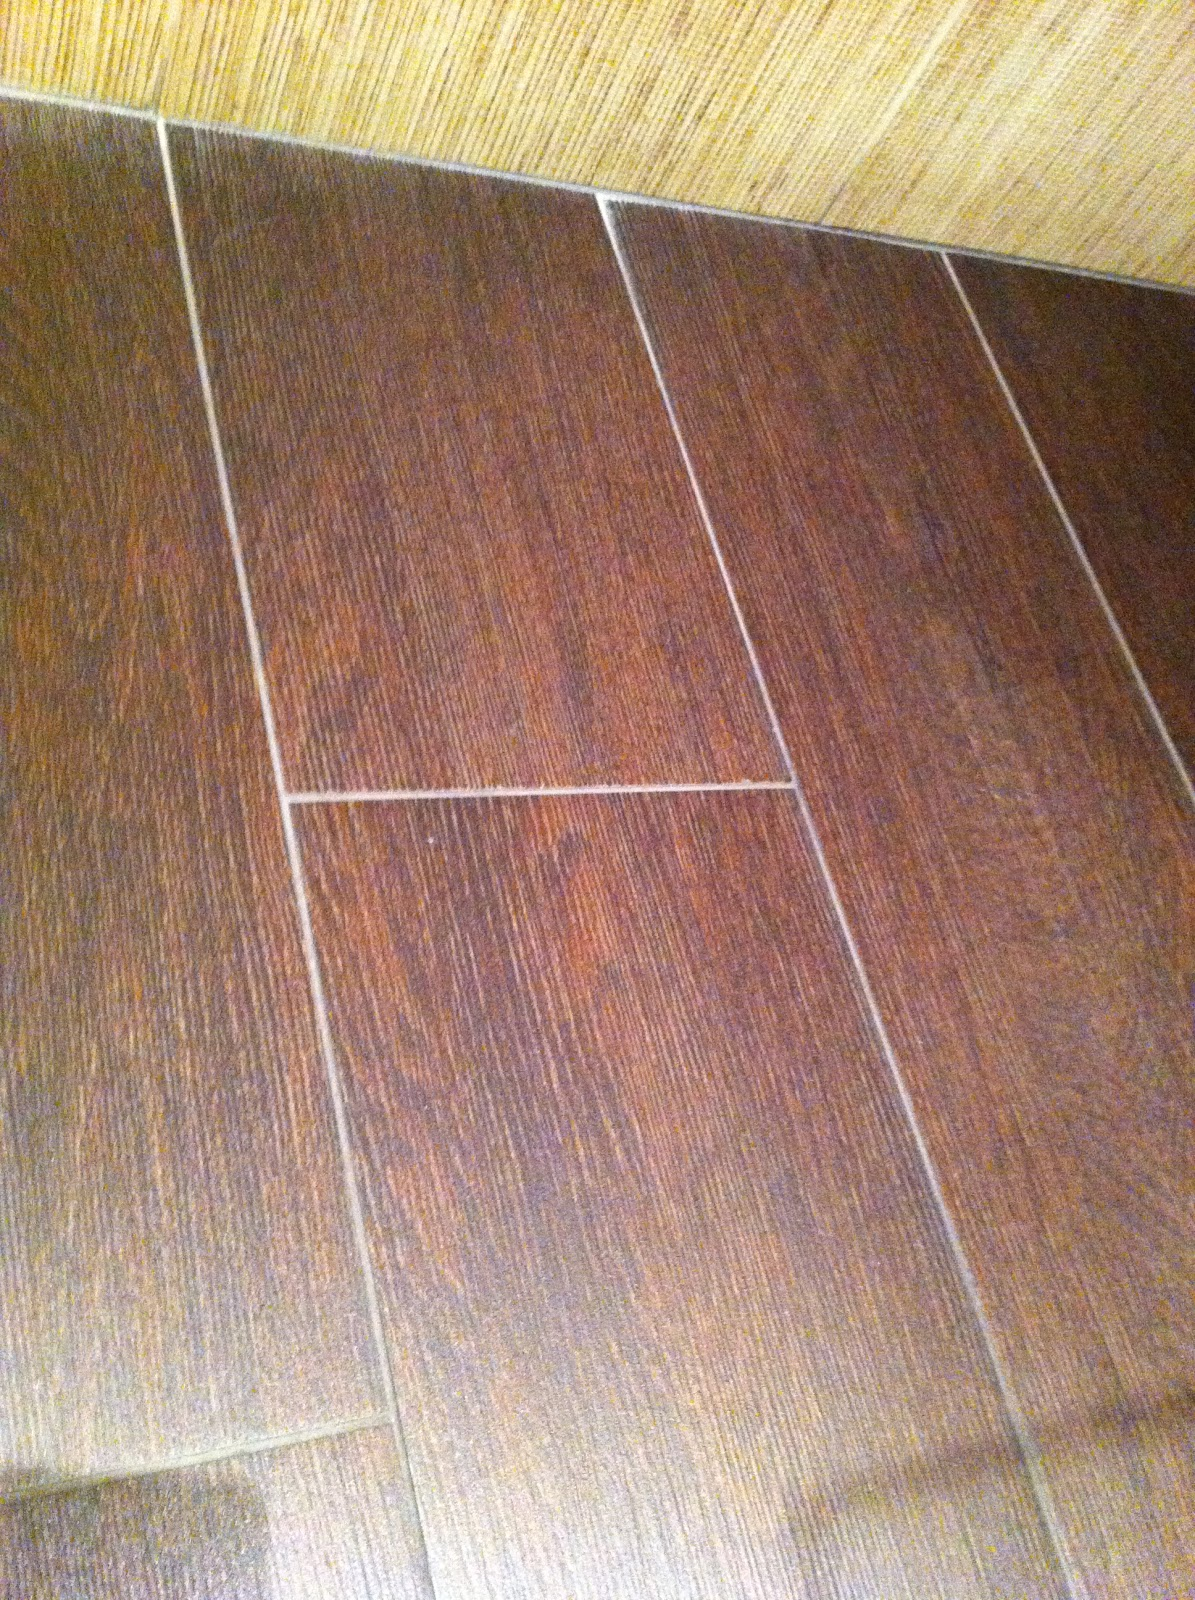 To da loos bamboo tiles and fake wood floor porcelaine for Fake hardwood tile